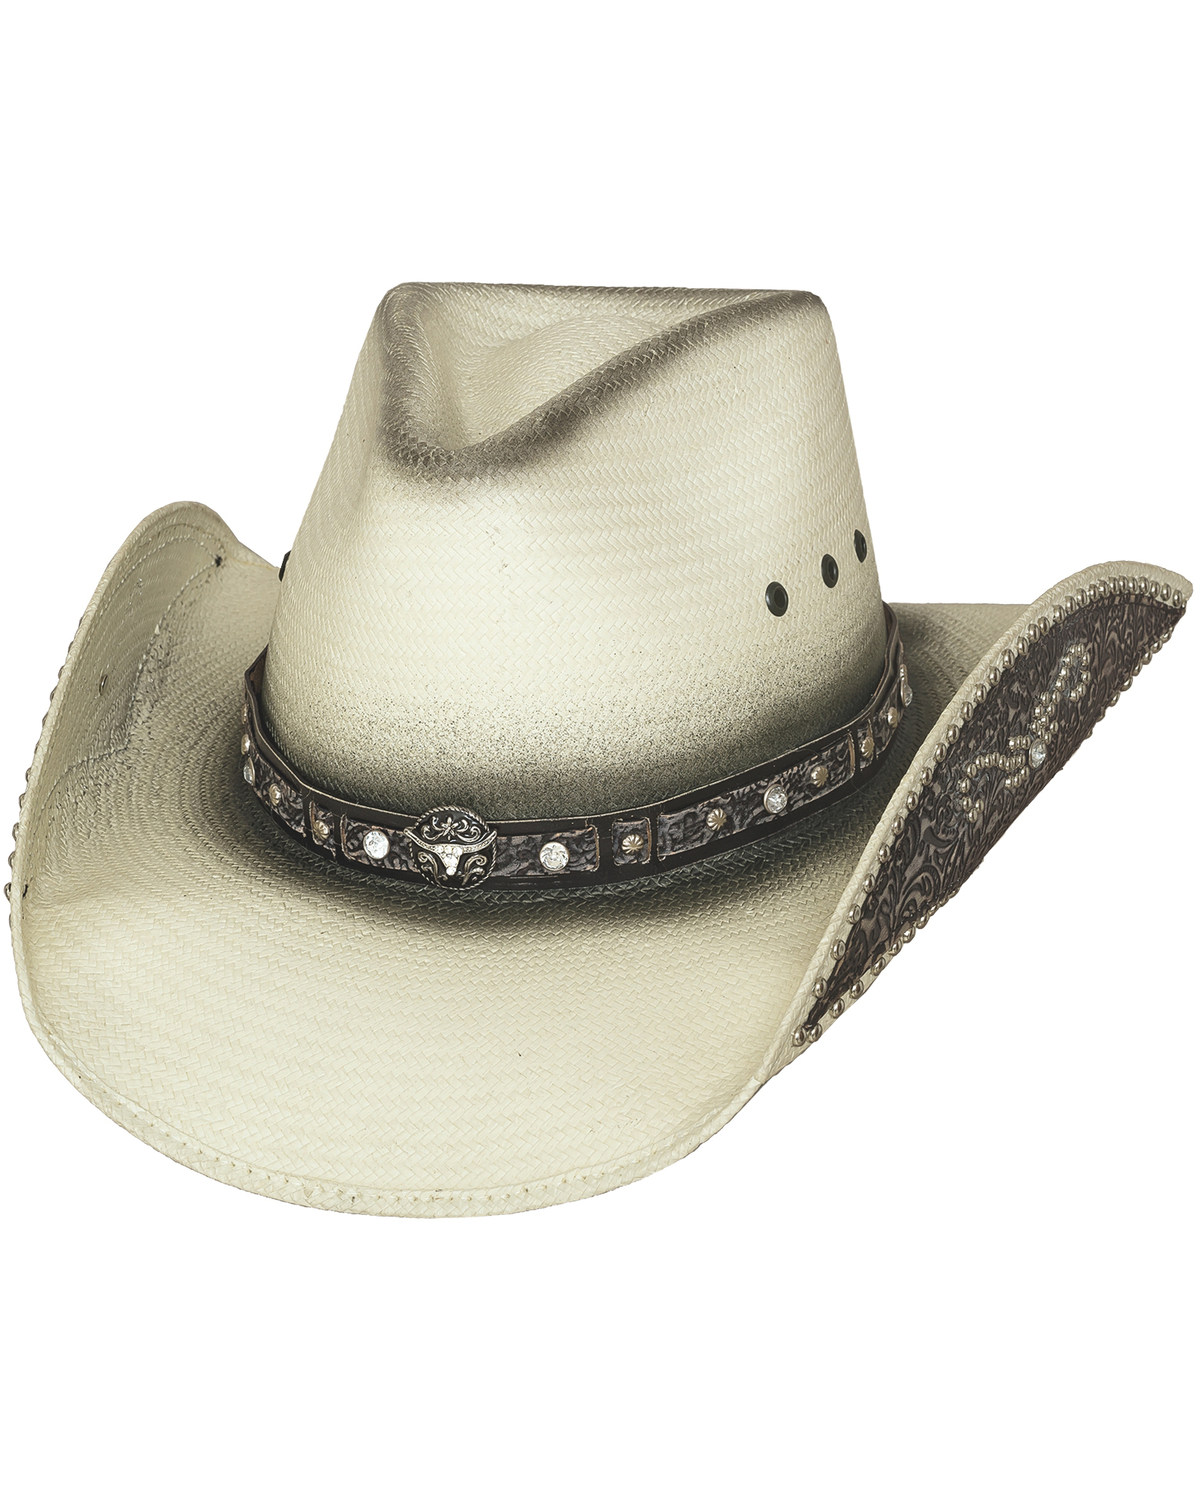 Bullhide Hats Women s Lose My Mind Straw Cowboy Hat  048dd326672